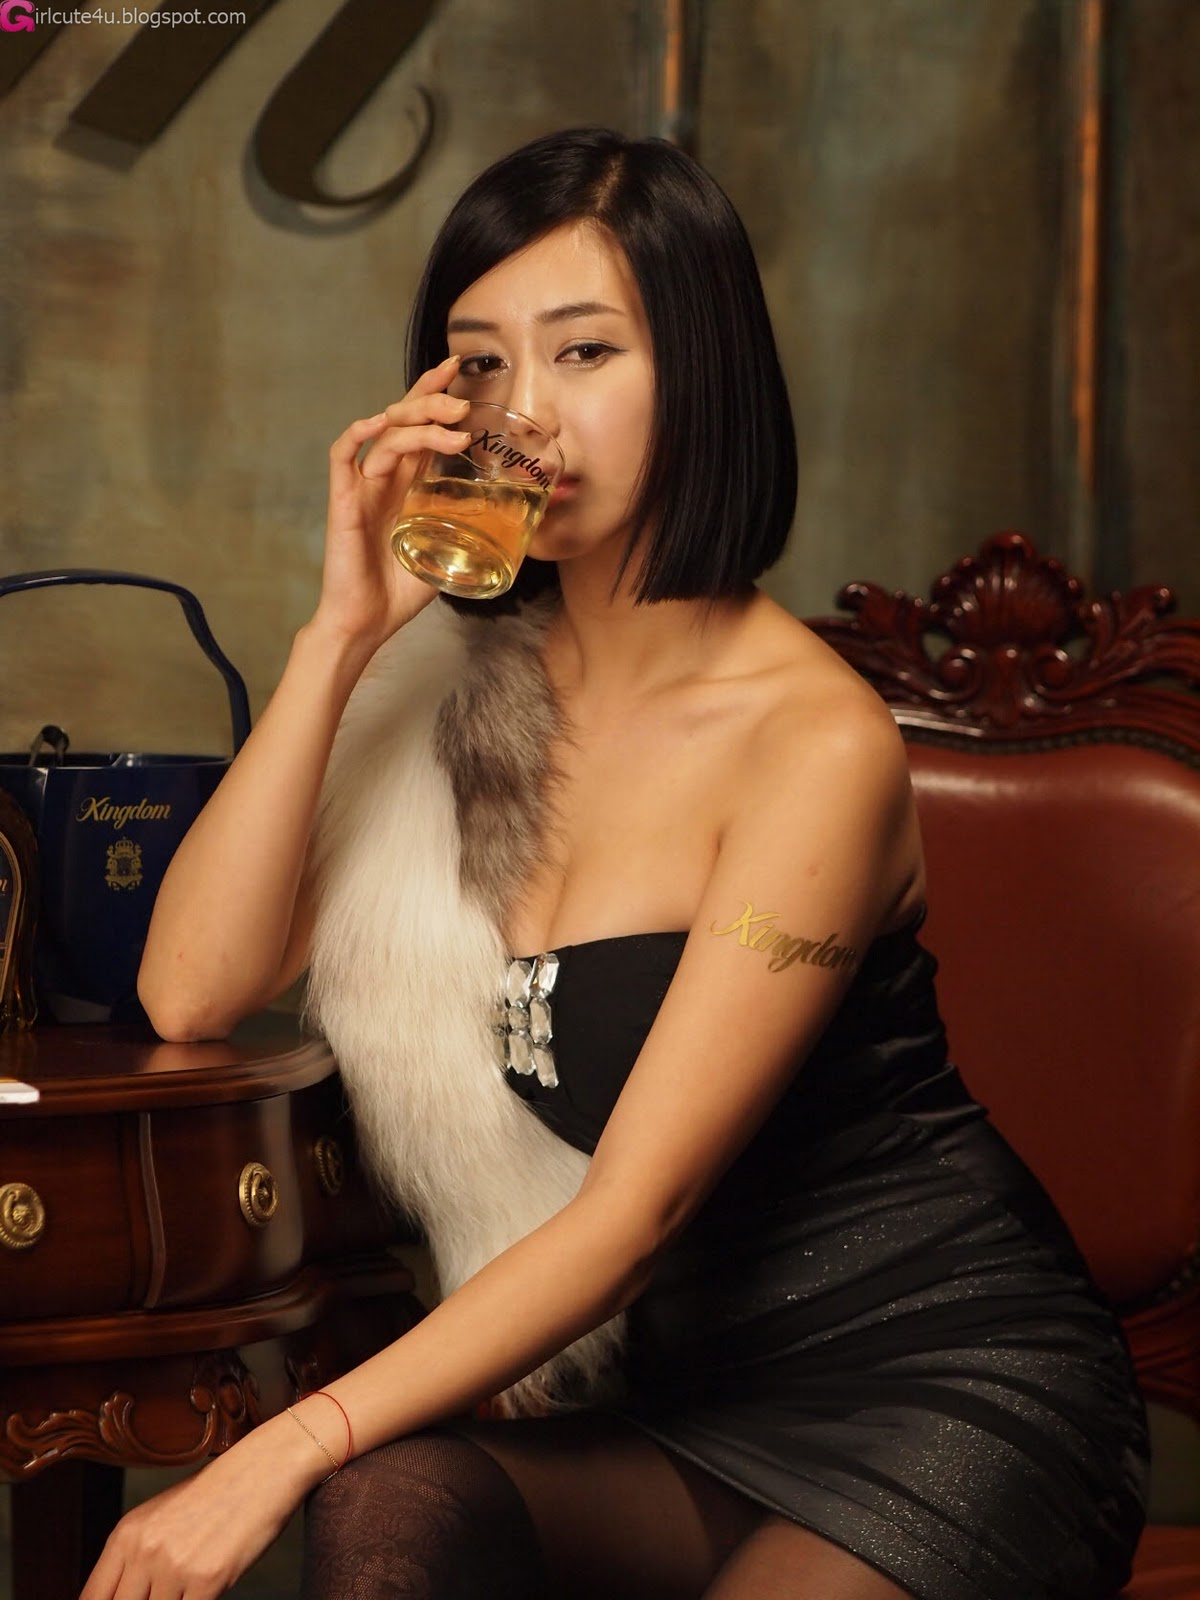 2 Kim Ha Yul for Kingdom Whisky-very cute asian girl-girlcute4u.blogspot.com